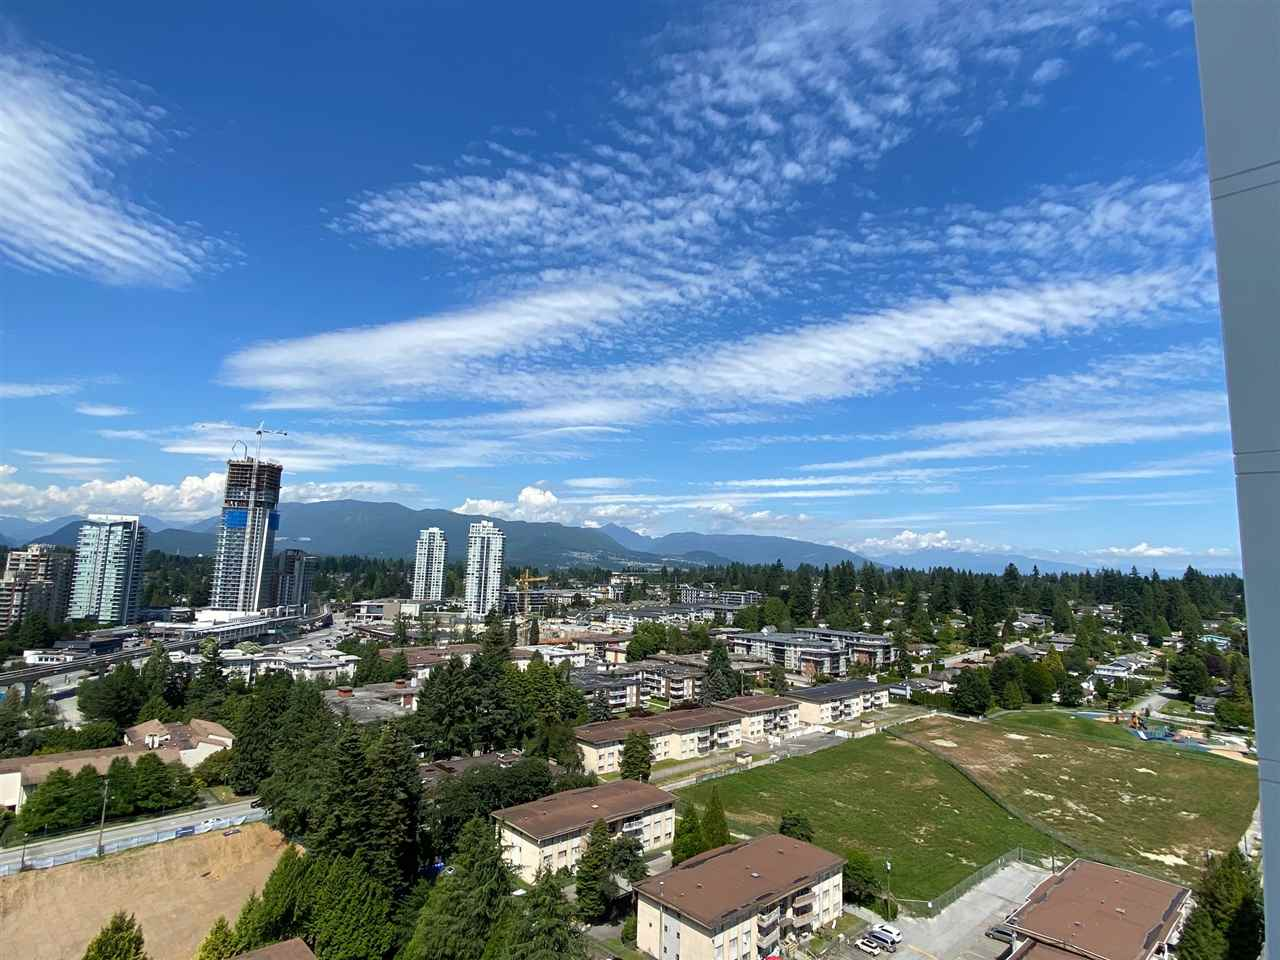 2009 657 WHITING WAY - Coquitlam West Apartment/Condo for sale, 2 Bedrooms (R2470807) - #19